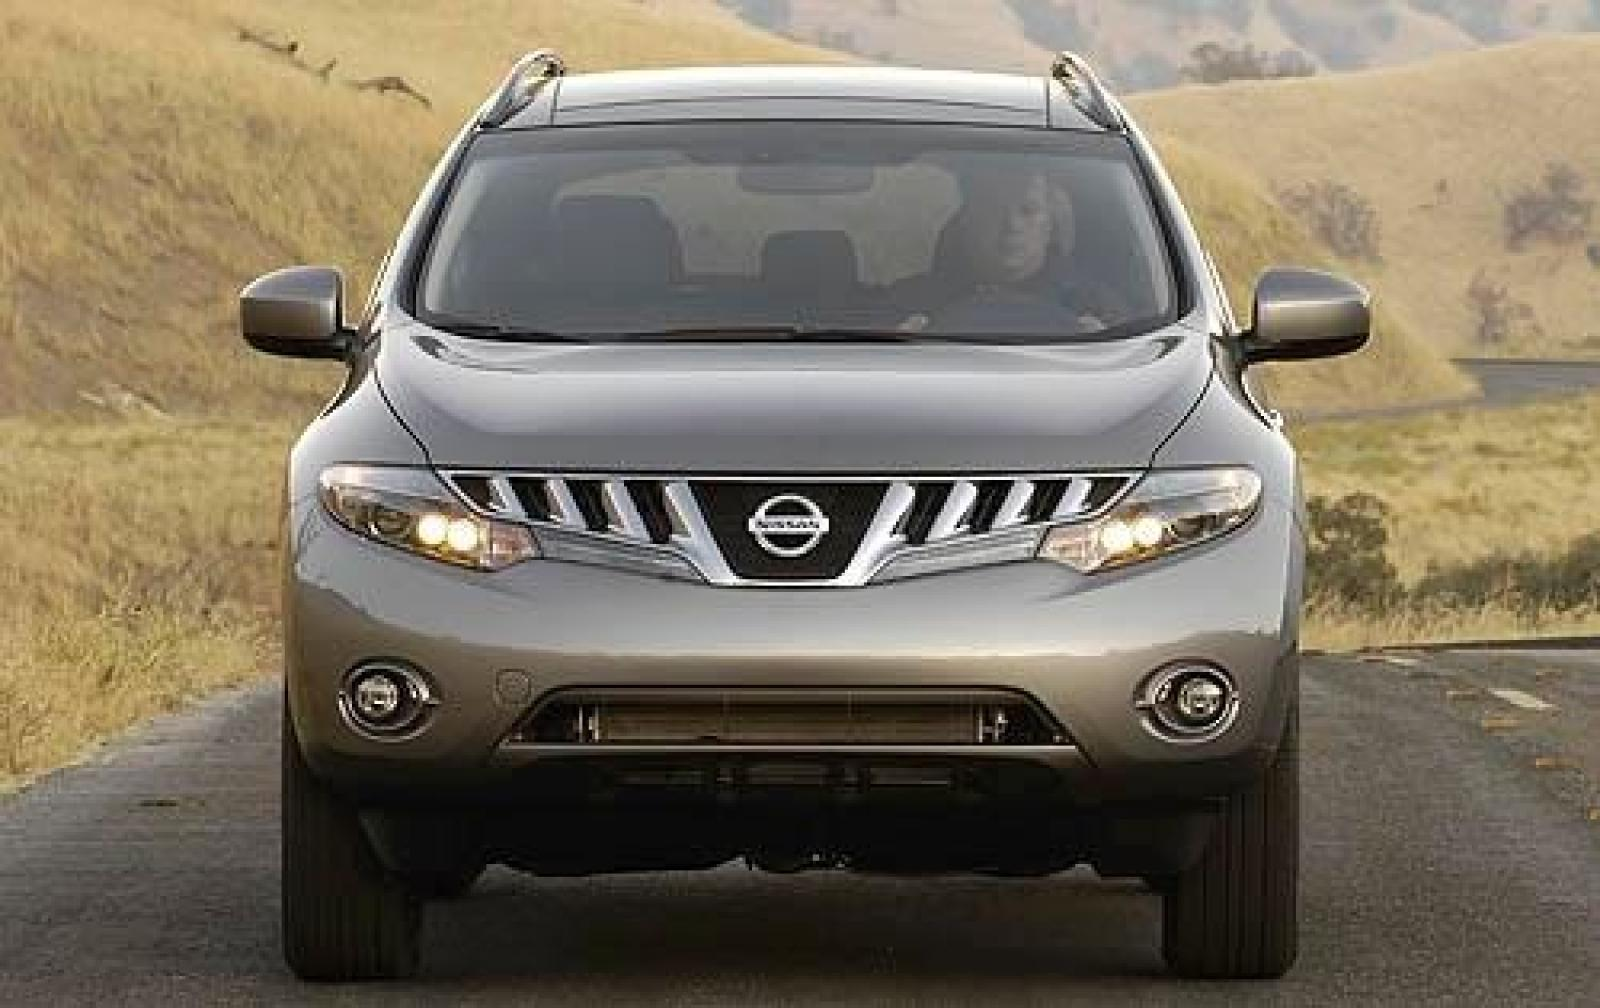 2010 Nissan Murano Information And Photos Zombiedrive